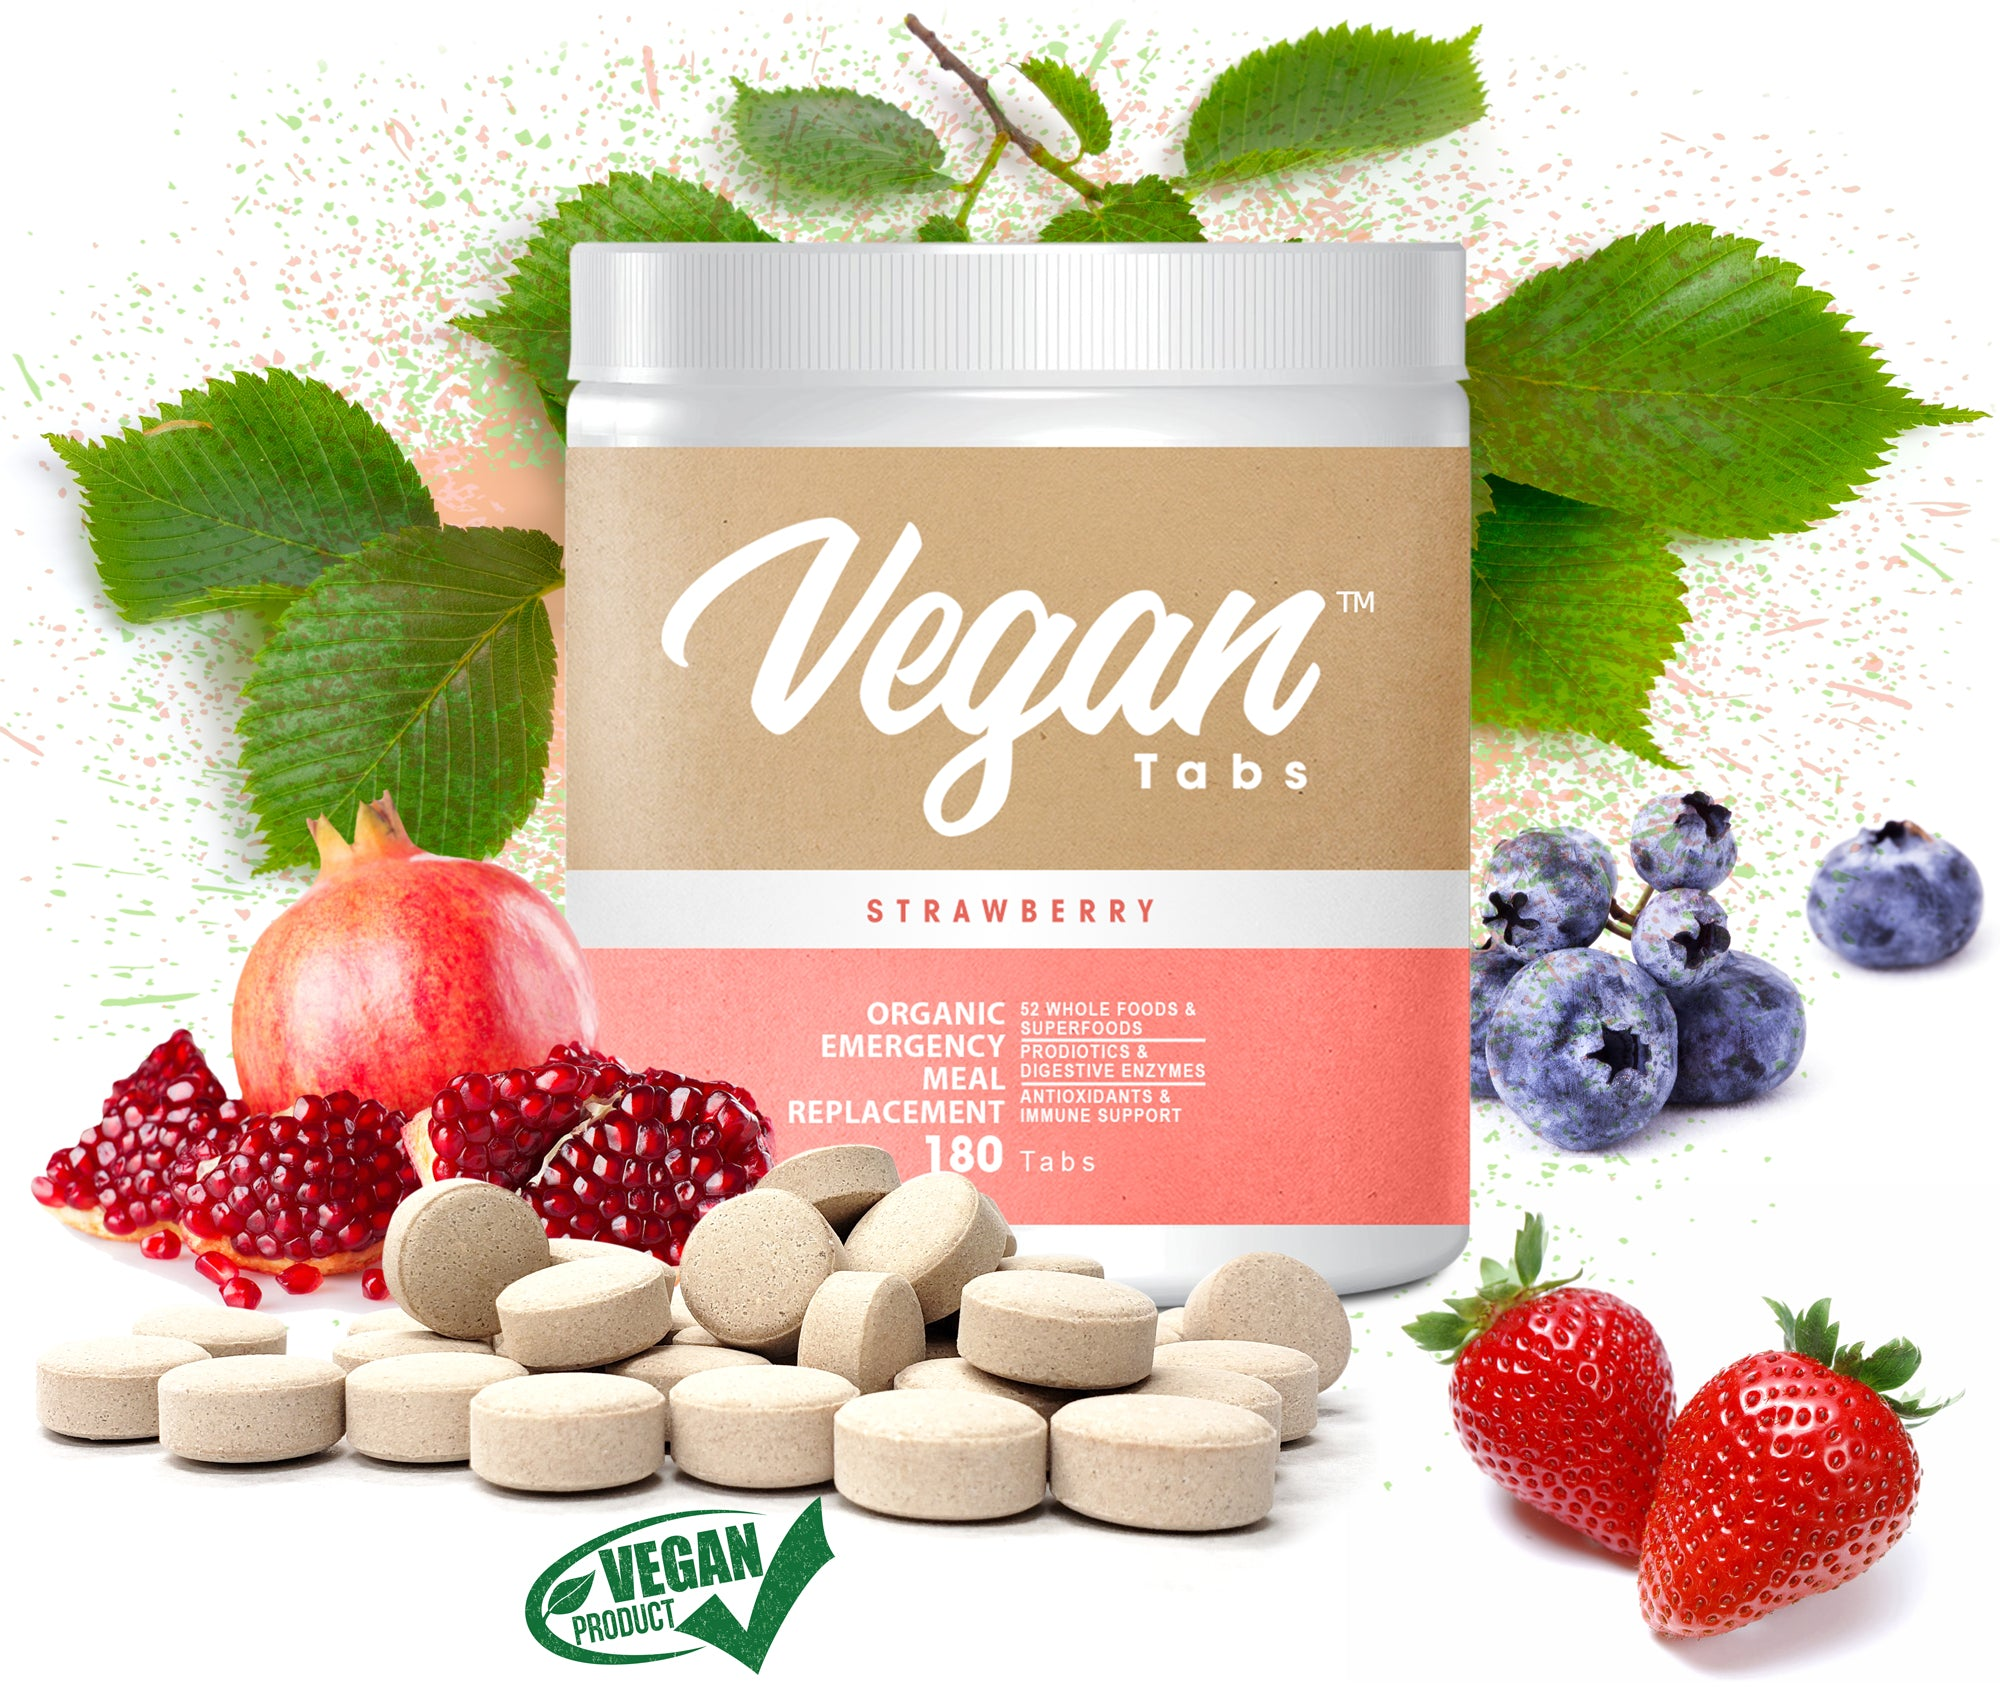 Vegan Tabs 15 Days Food Supply - Strawberry